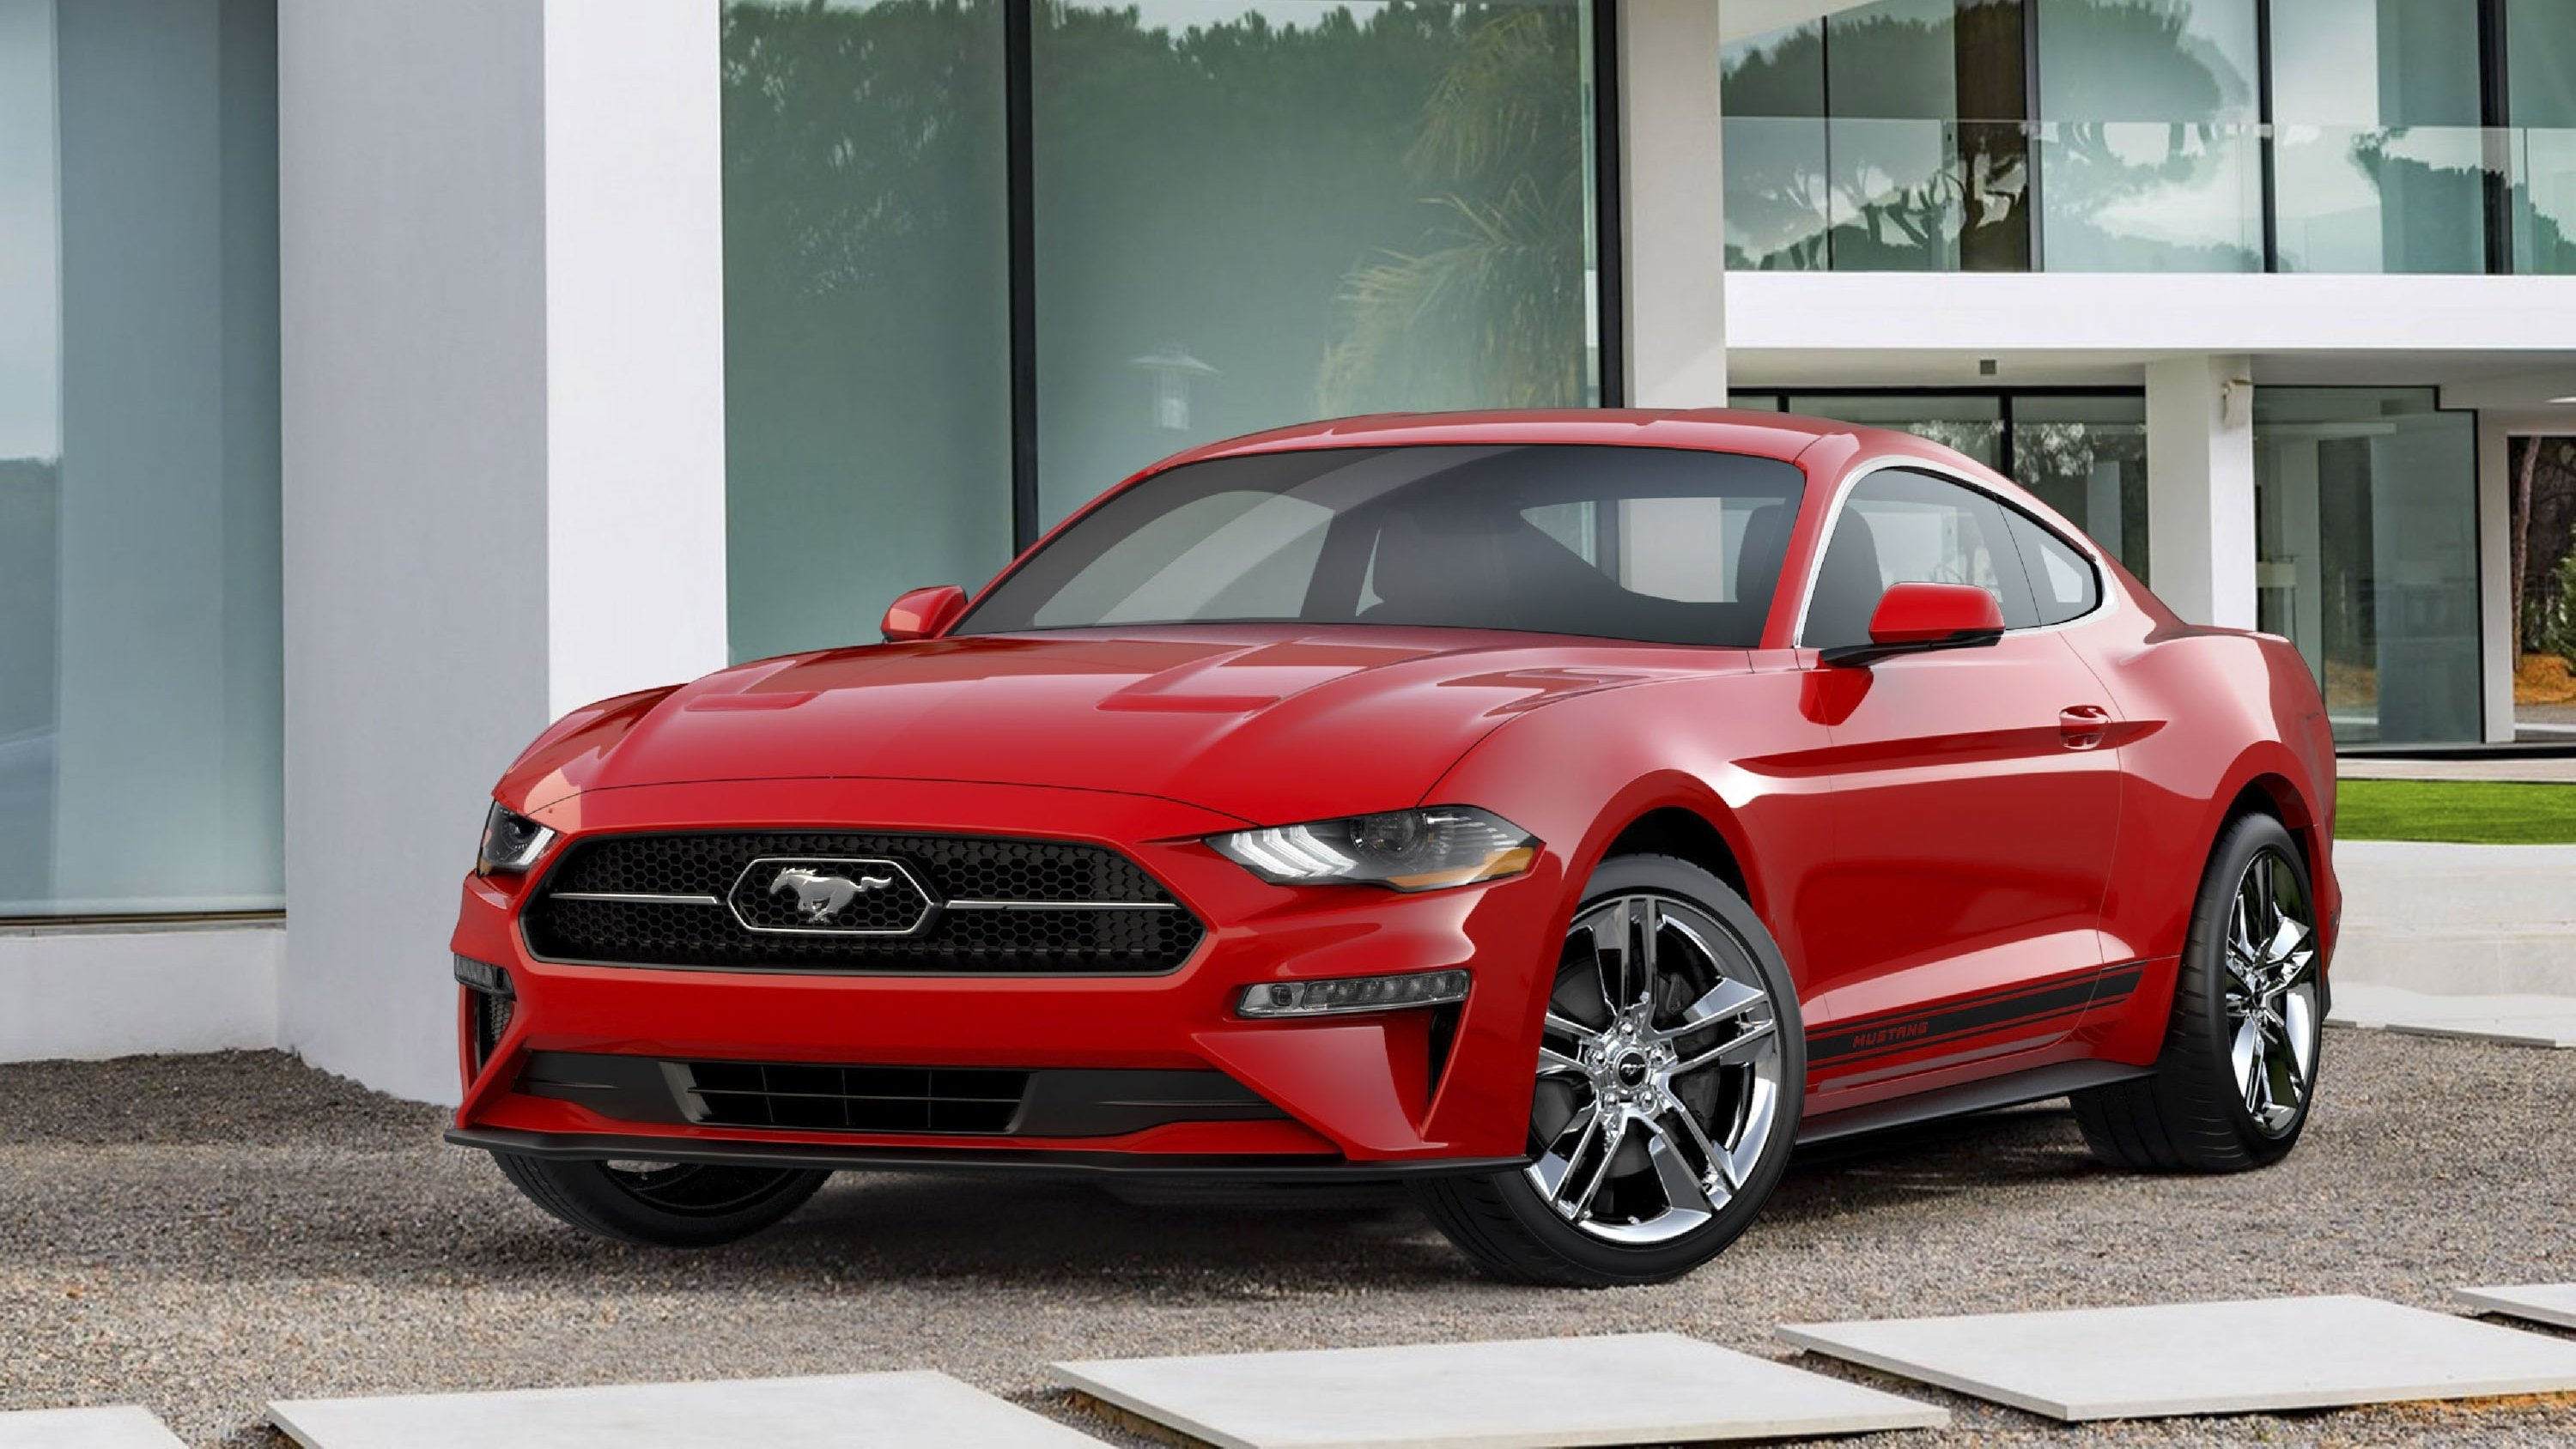 2018 ford mustang ecoboost gets a new pony package top speed howldb. Black Bedroom Furniture Sets. Home Design Ideas